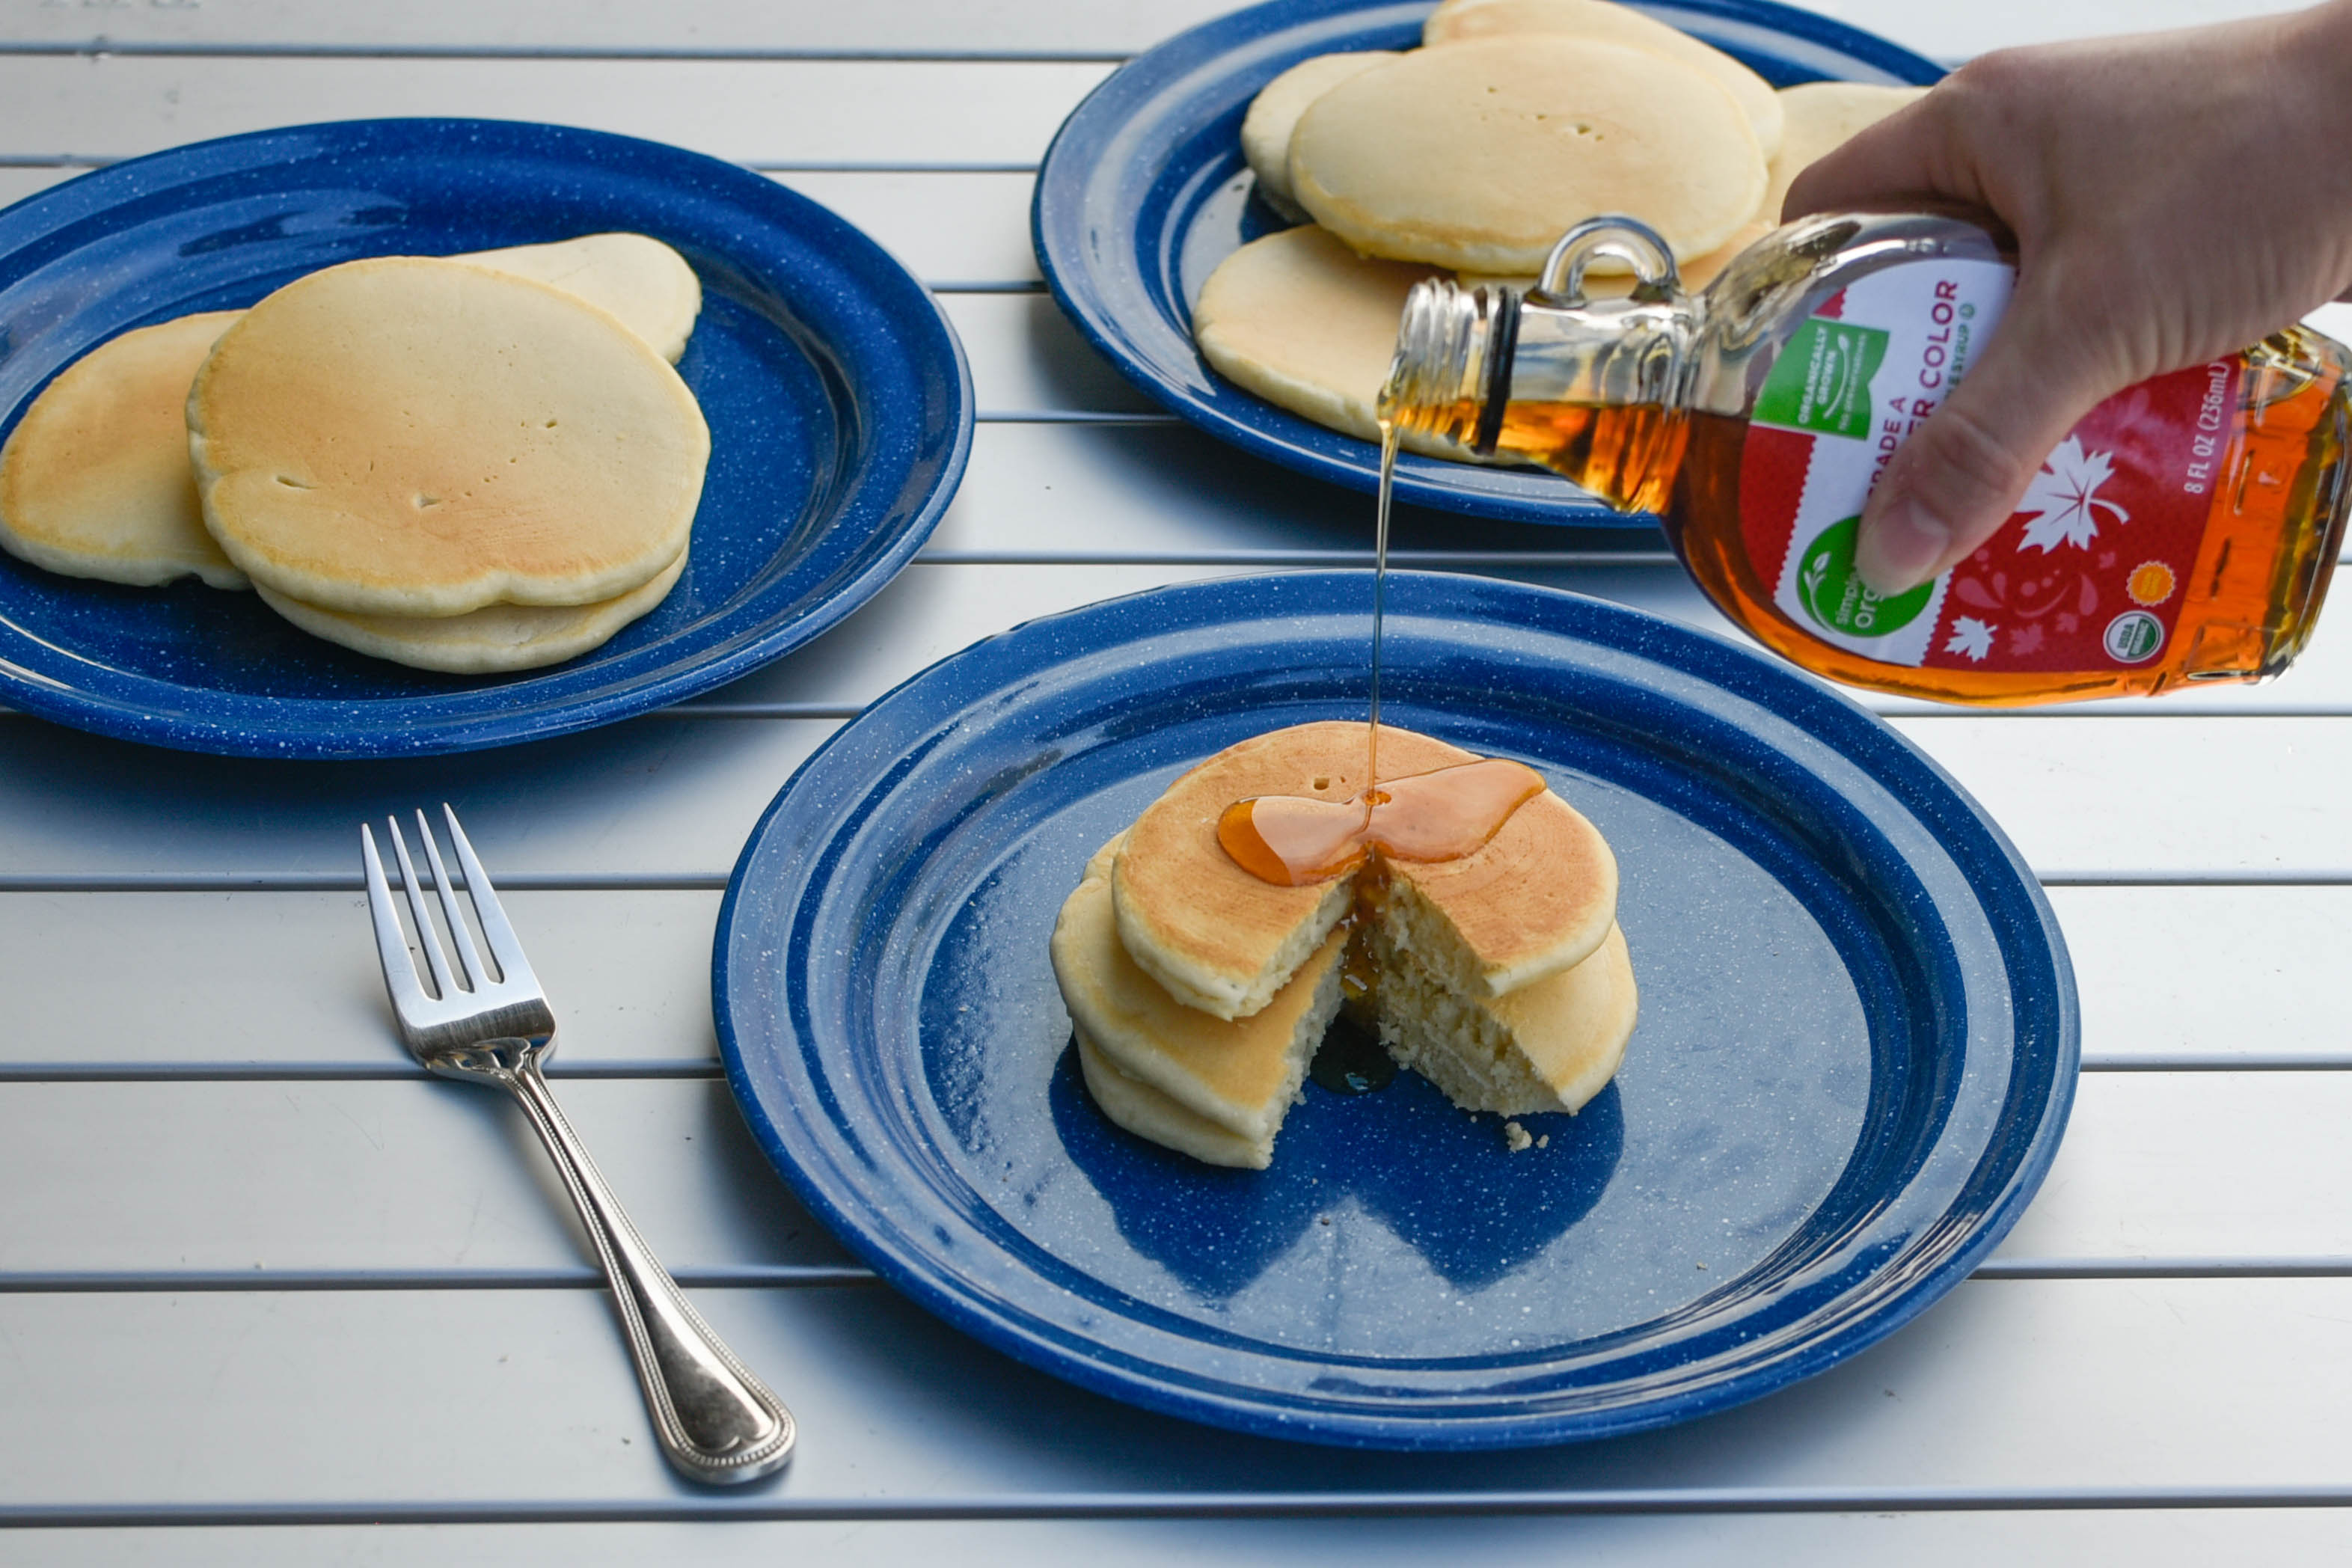 Blue plates with pancakes on them and syrup being poured on one plate